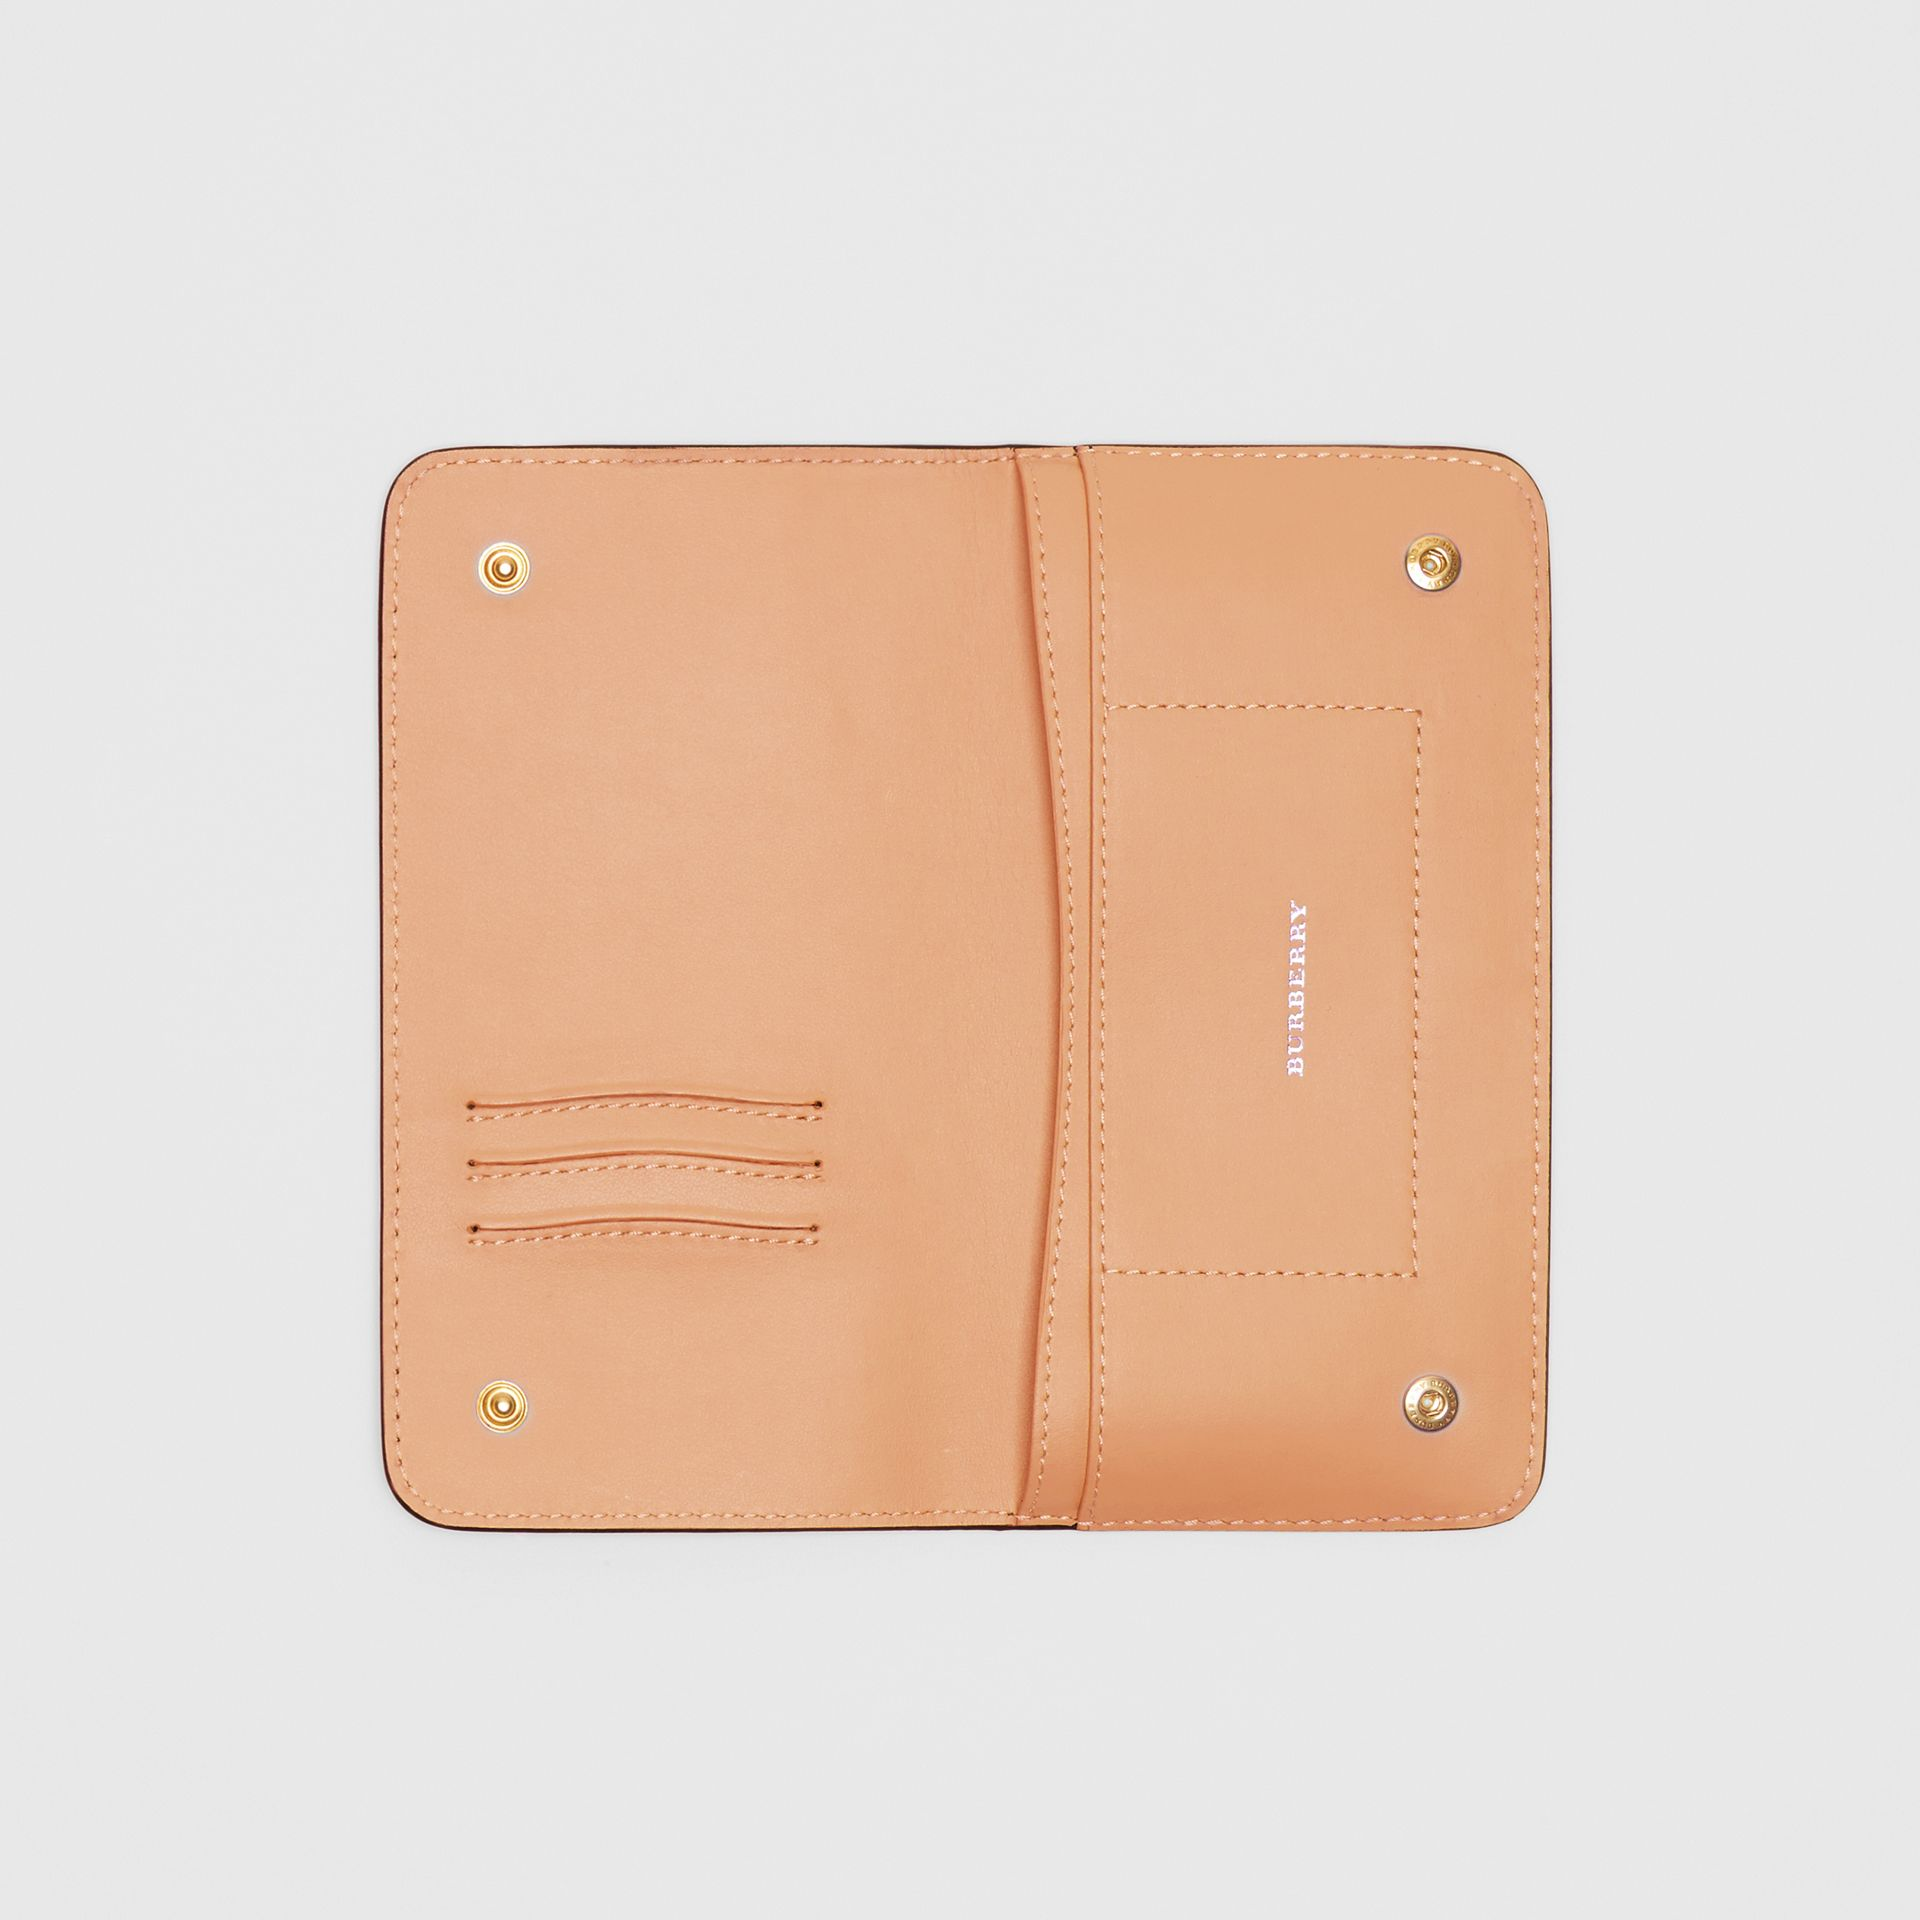 EKD Leather Phone Wallet in Light Camel - Women | Burberry United States - gallery image 2